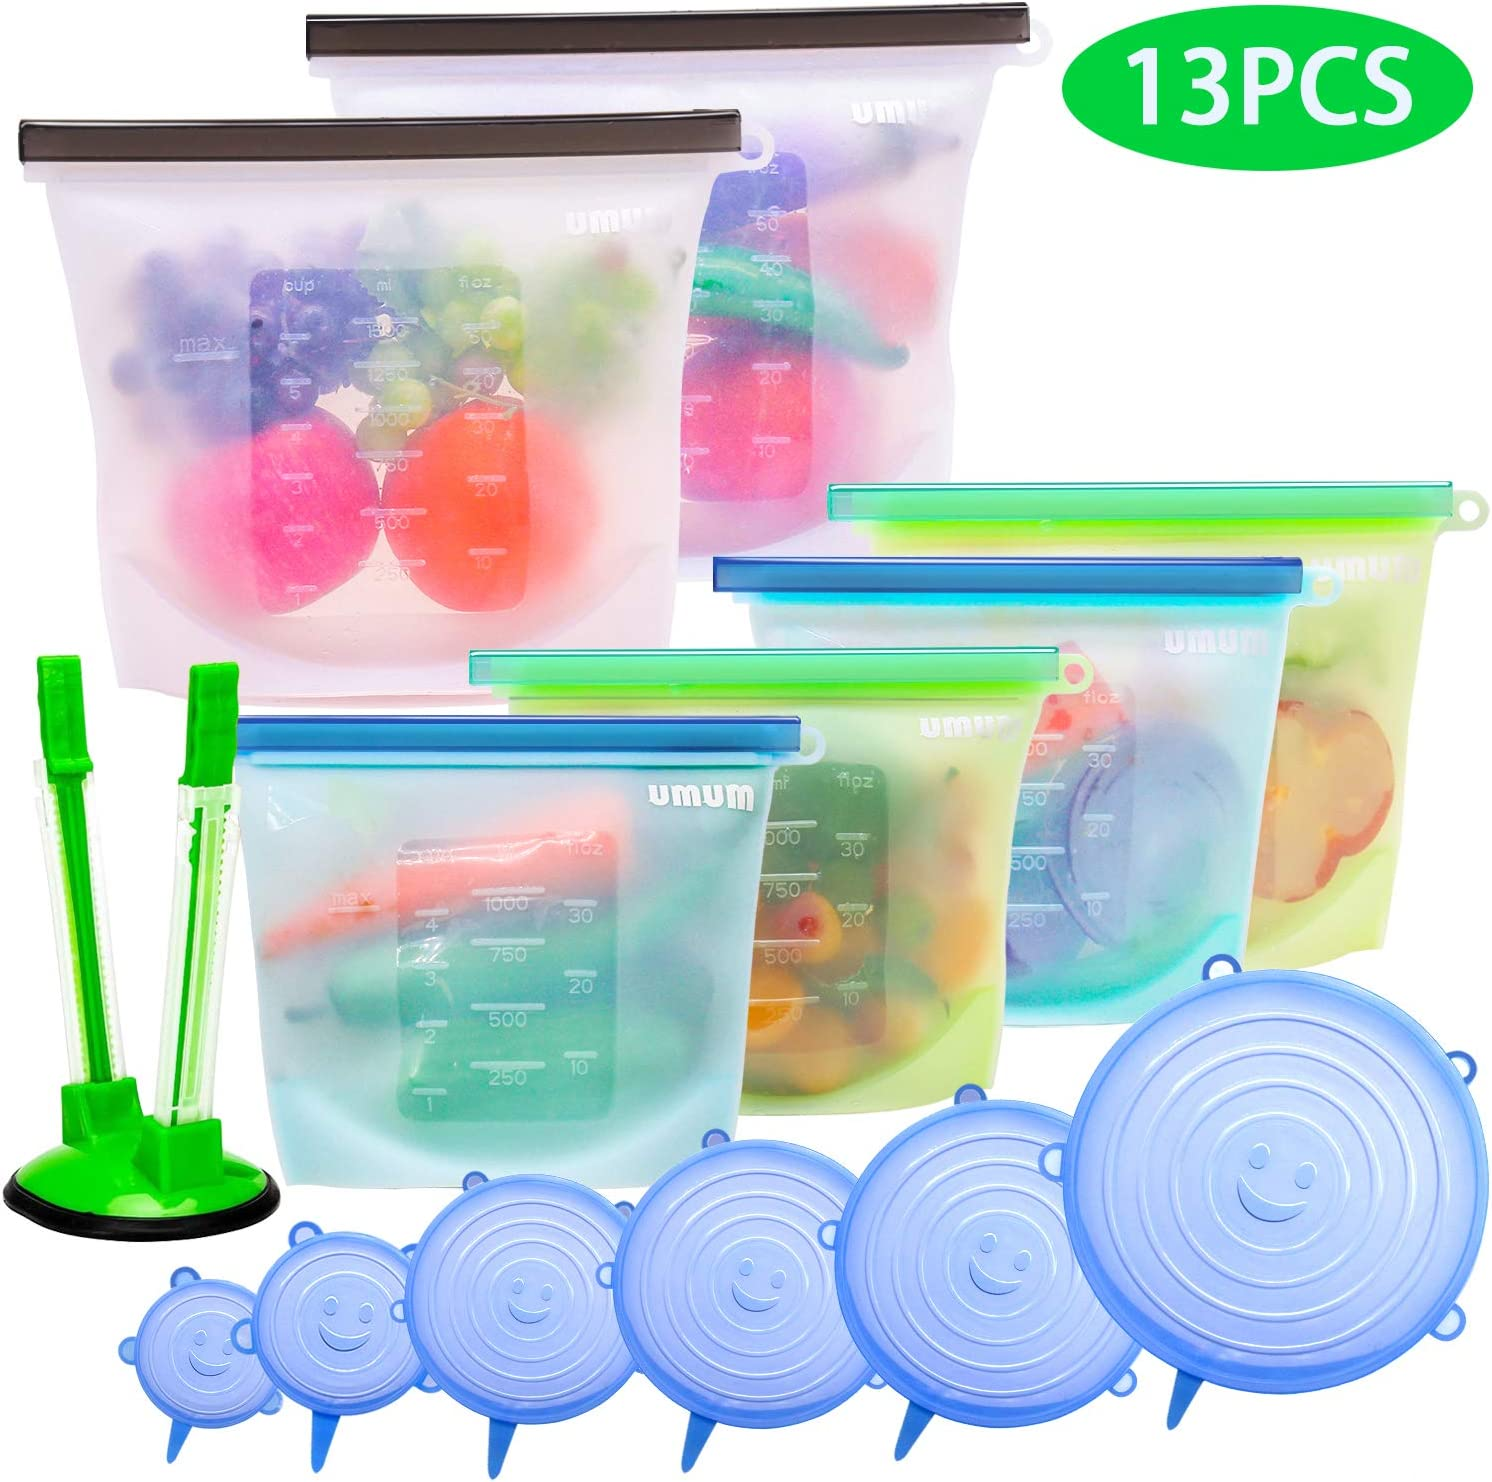 Reusable Silicone Food Storage Bags & Silicone Stretch Lids, Food Grade Silicone Bags and Covers, Airtight Seal Food Preservation Bags for Vegetable, Lunch, BPA Free, Freezer & Dishwasher Safe